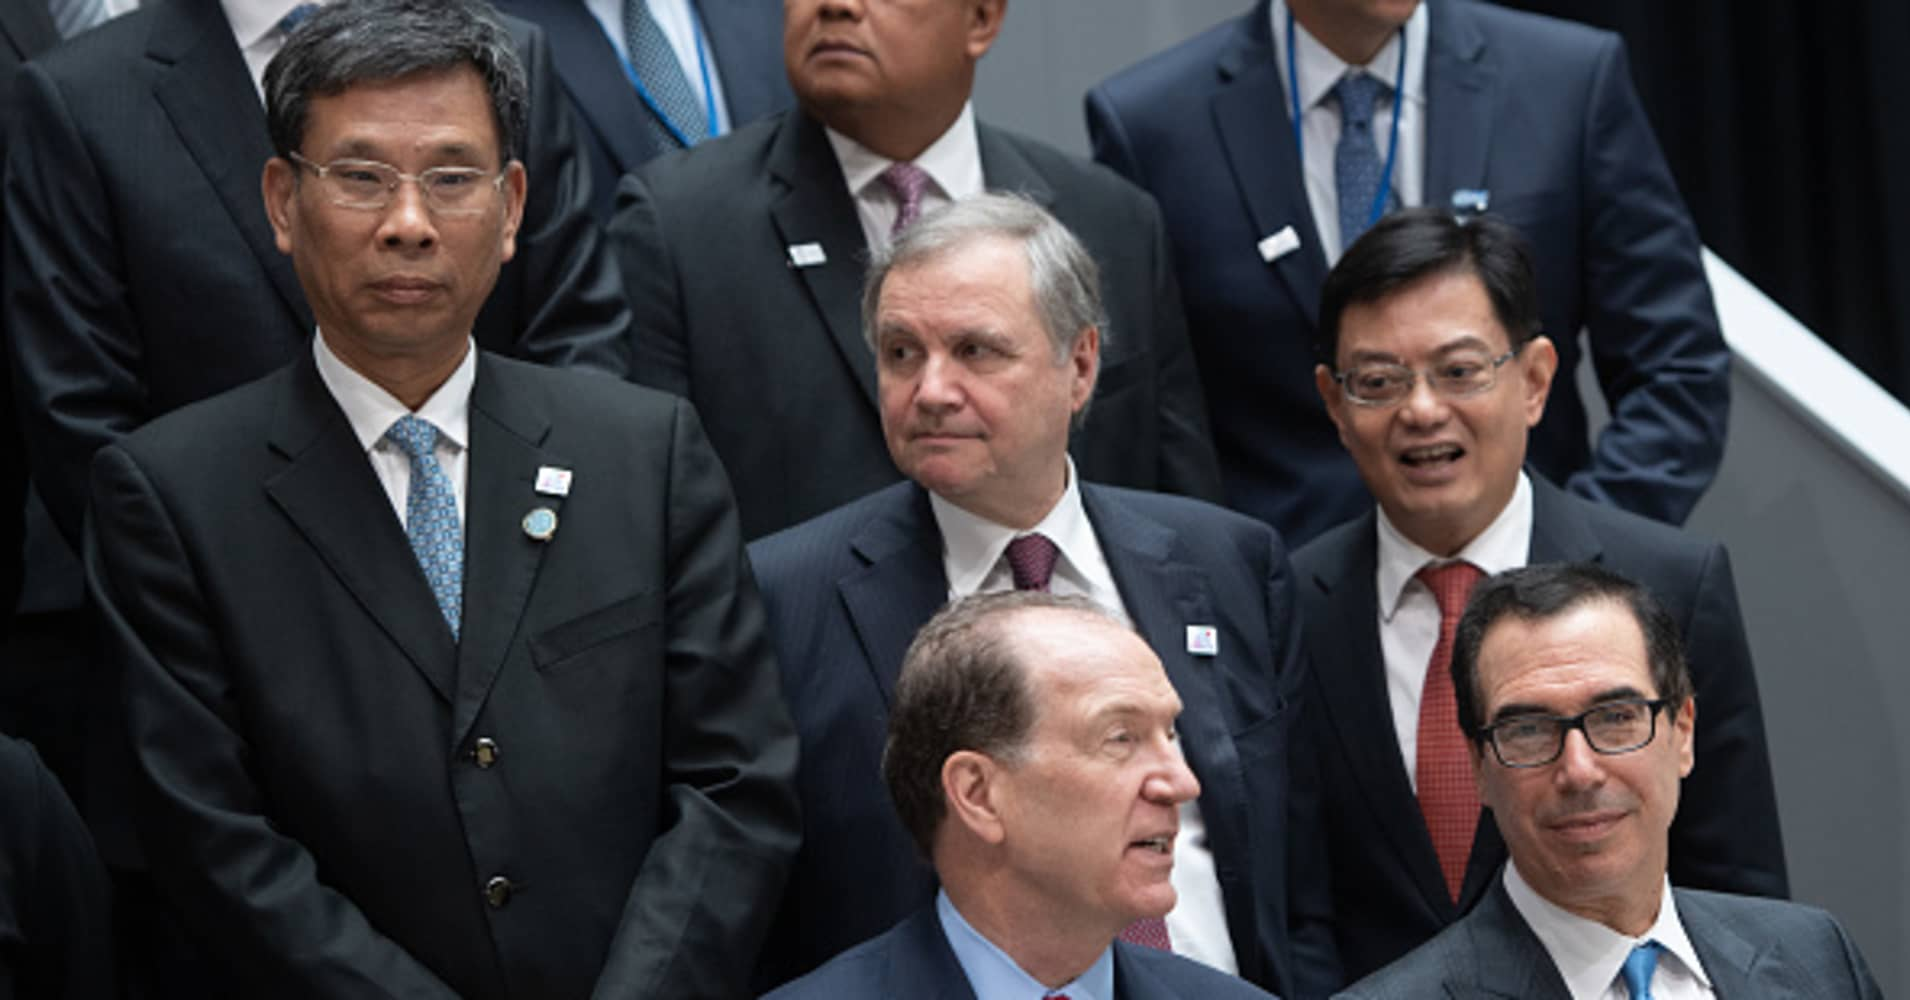 G-20 chiefs: World economic growth to revive later this year